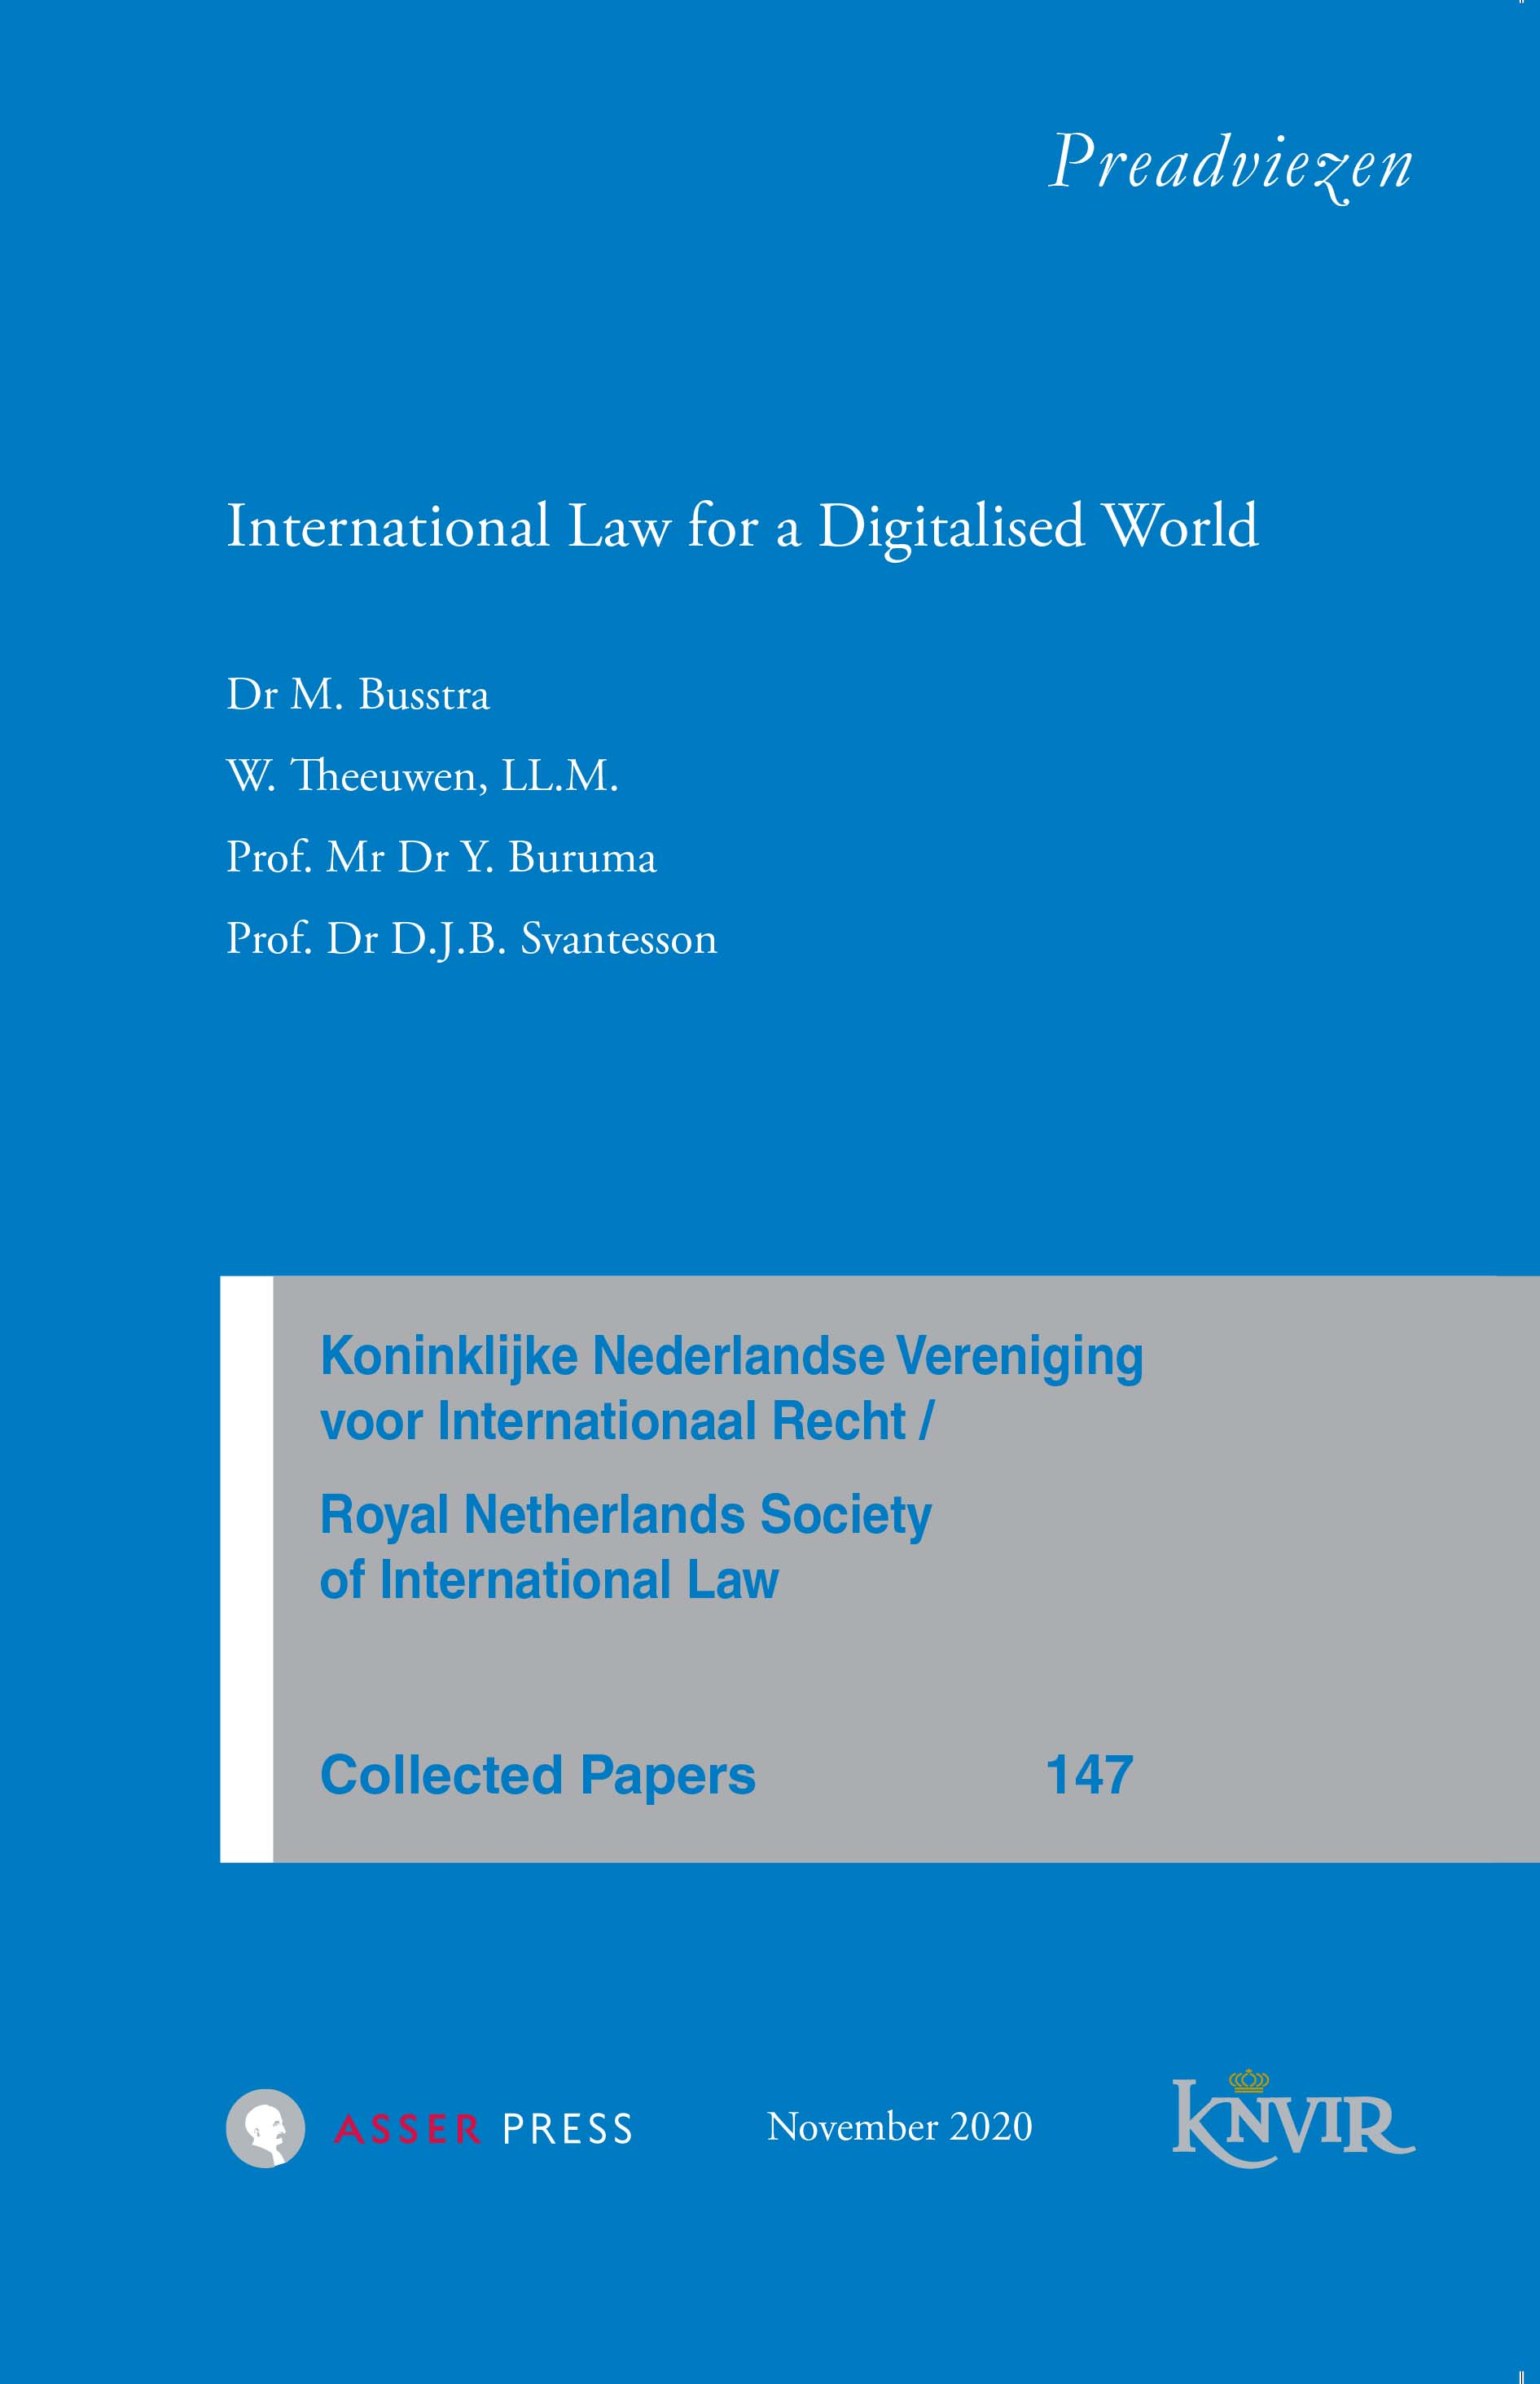 Collected Papers van de Koninklijke Nederlandse Vereniging voor Internationaal Recht - nr 147 - International Law for a Digitalised World